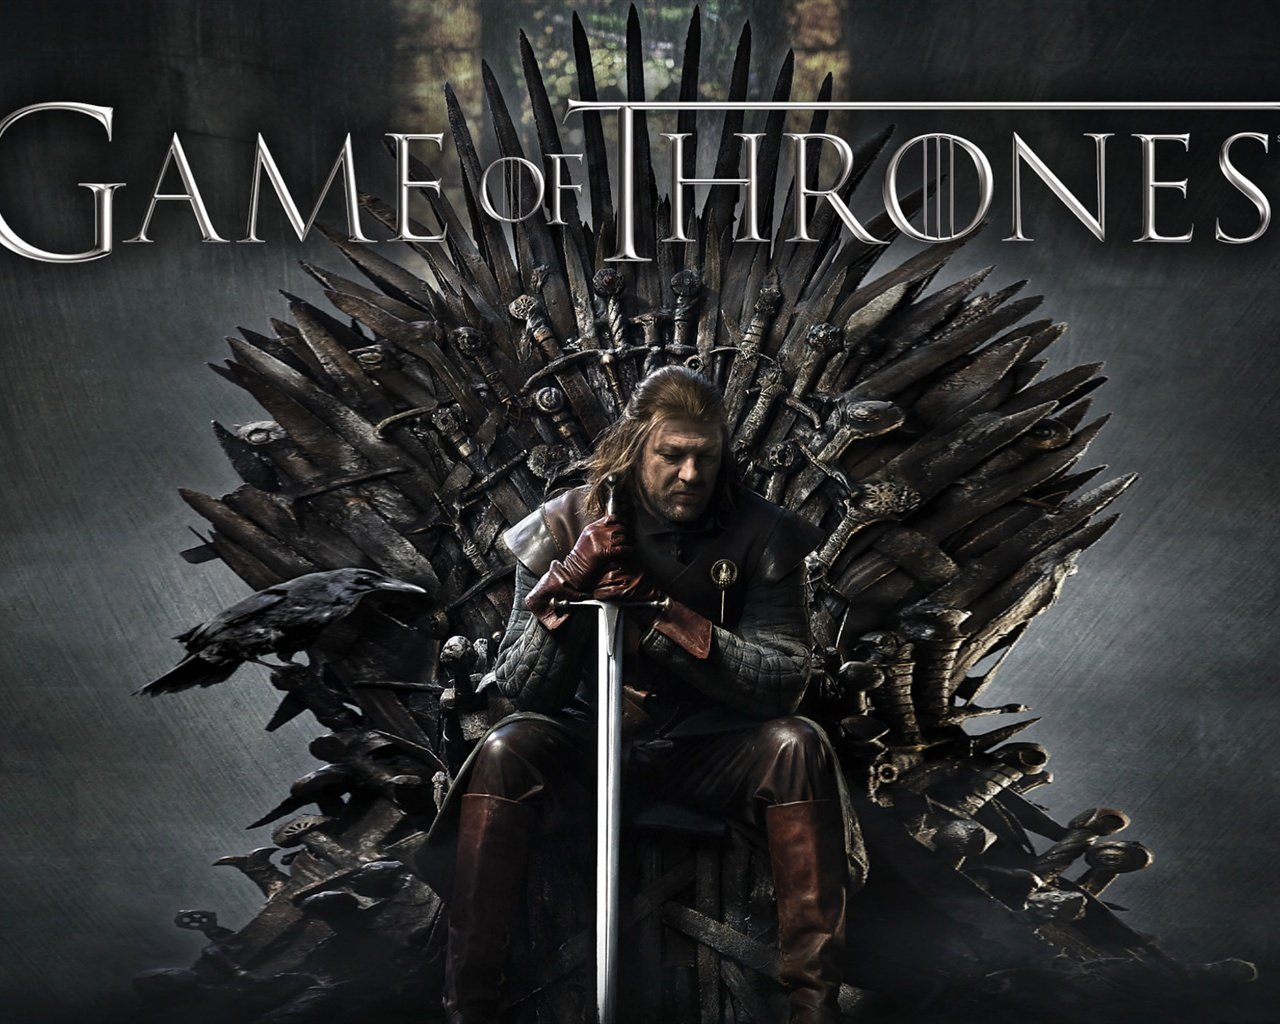 Song of Ice and Fire Game of Thrones Fonds dcran 1280x1024 1280x1024